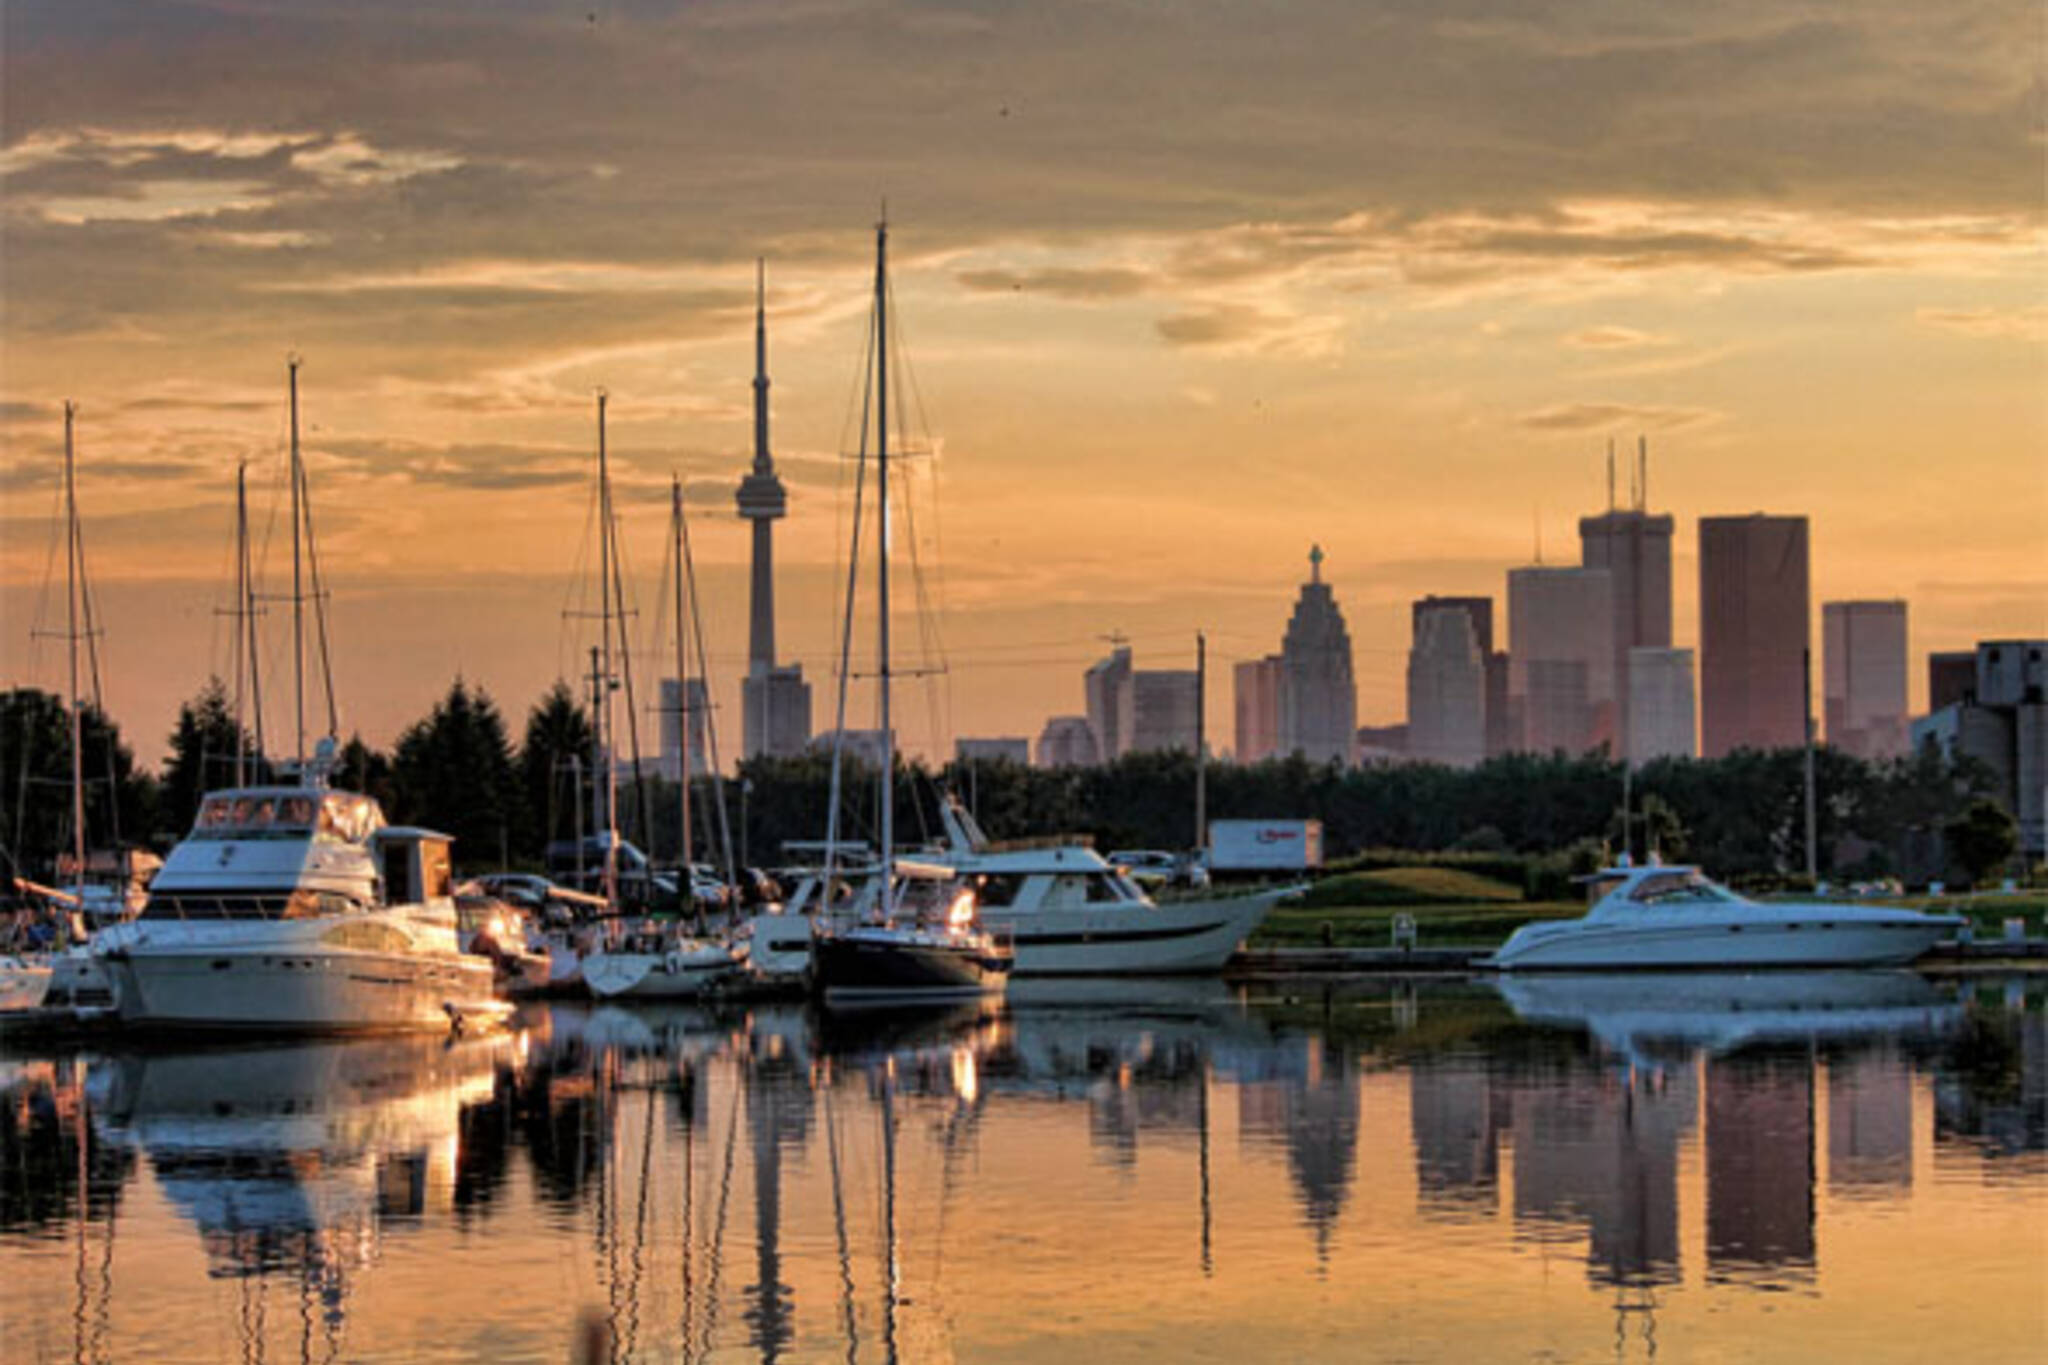 sunset marina toronto